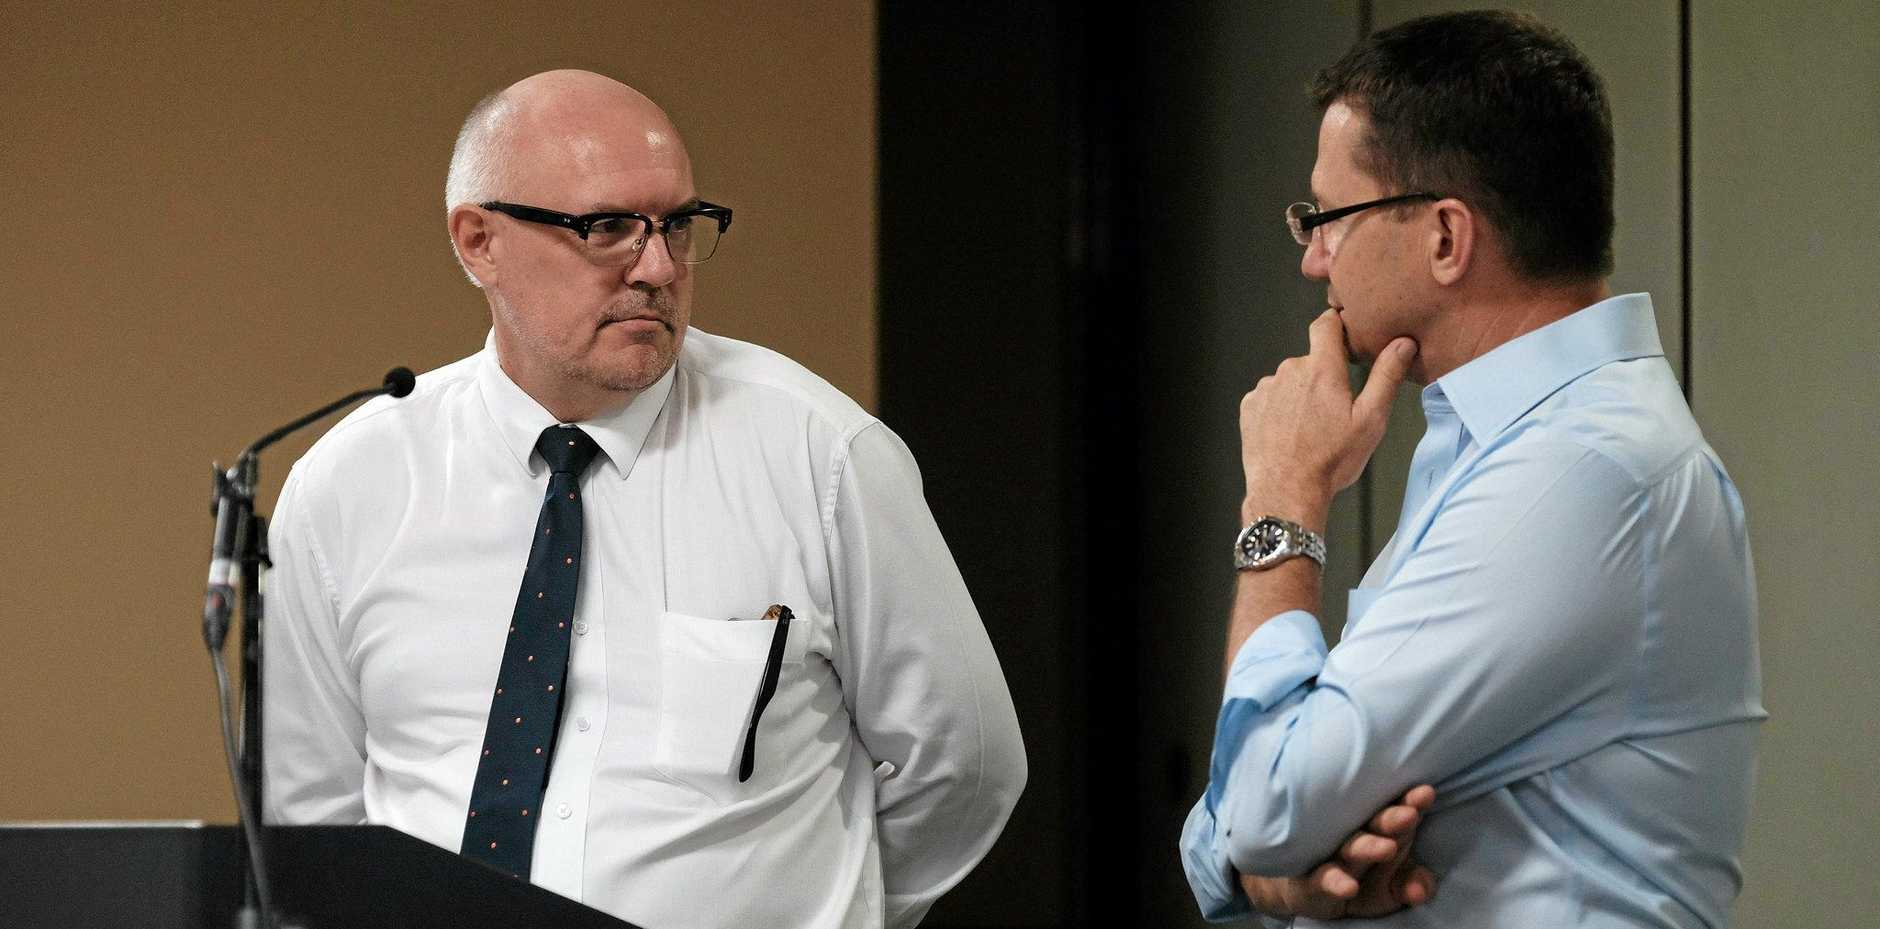 DOWN TO BRASS TACKS: Western Downs Regional Council CEO Ross Musgrove answers questions on Council's procurement policies from CCCI president Rob Hart during Tuesday's Year Ahead Series breakfast in Chinchilla.